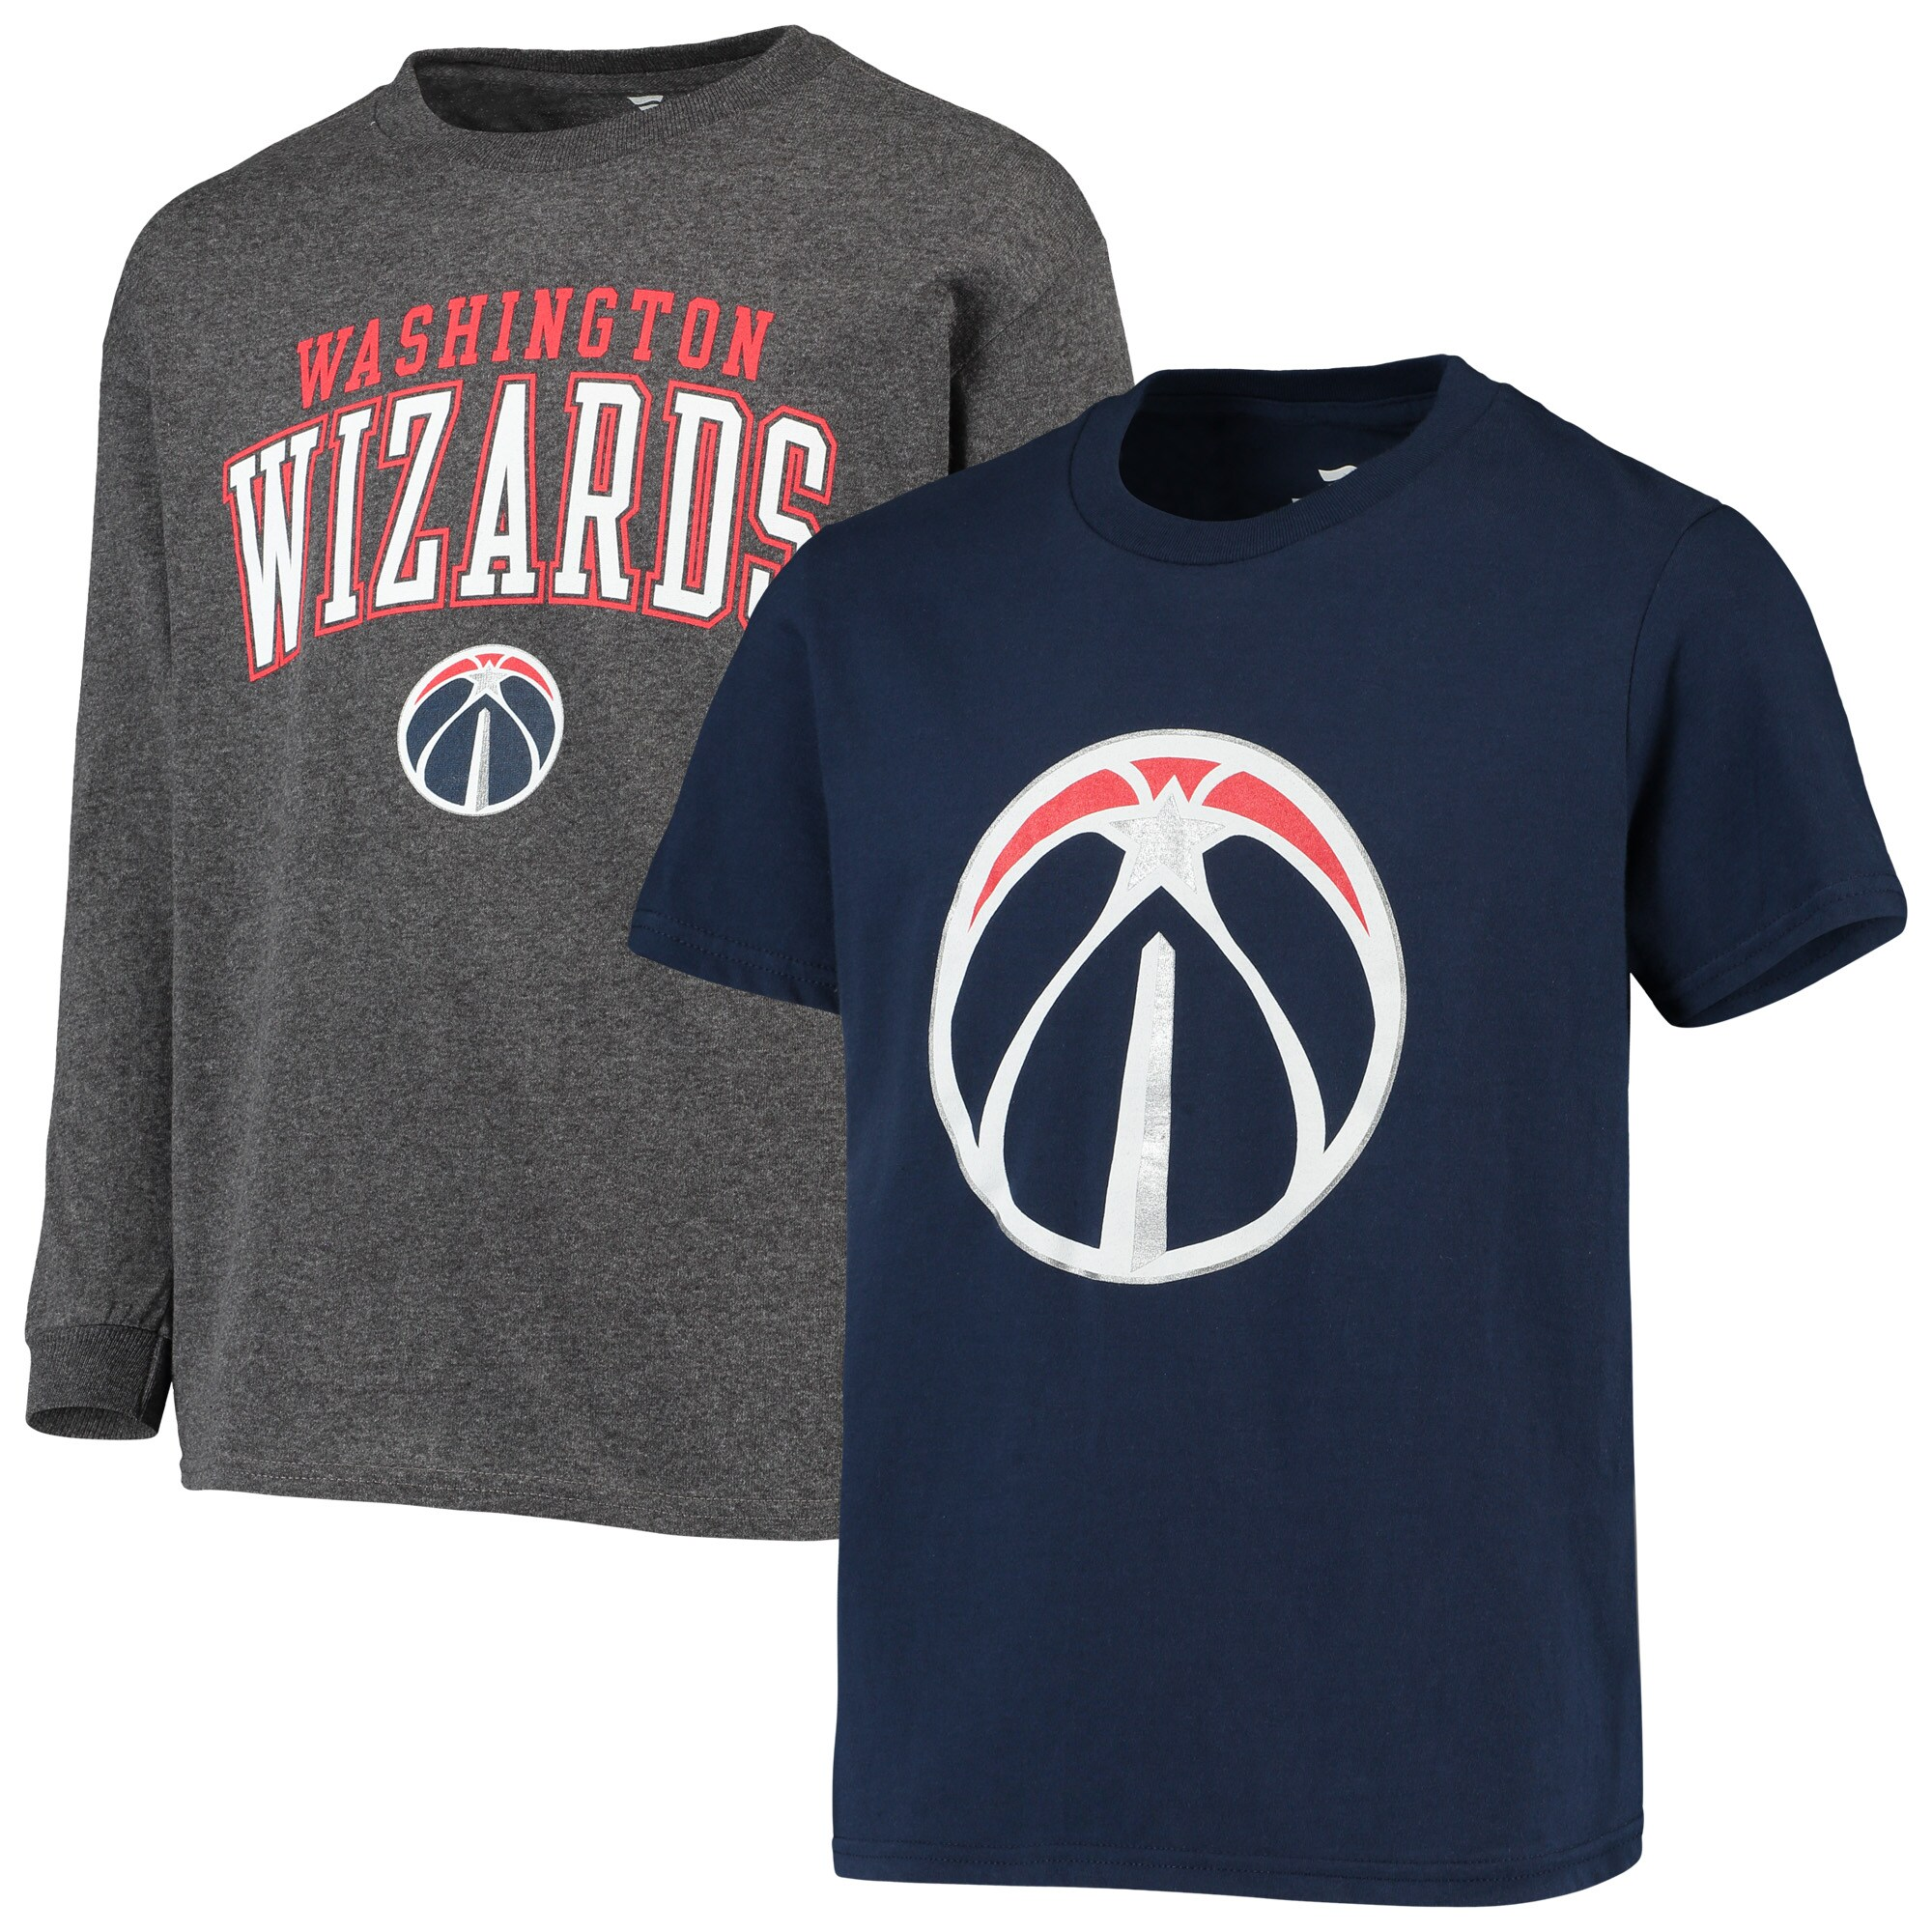 Washington Wizards Fanatics Branded Youth Square T-Shirt Combo Set - Navy/Gray